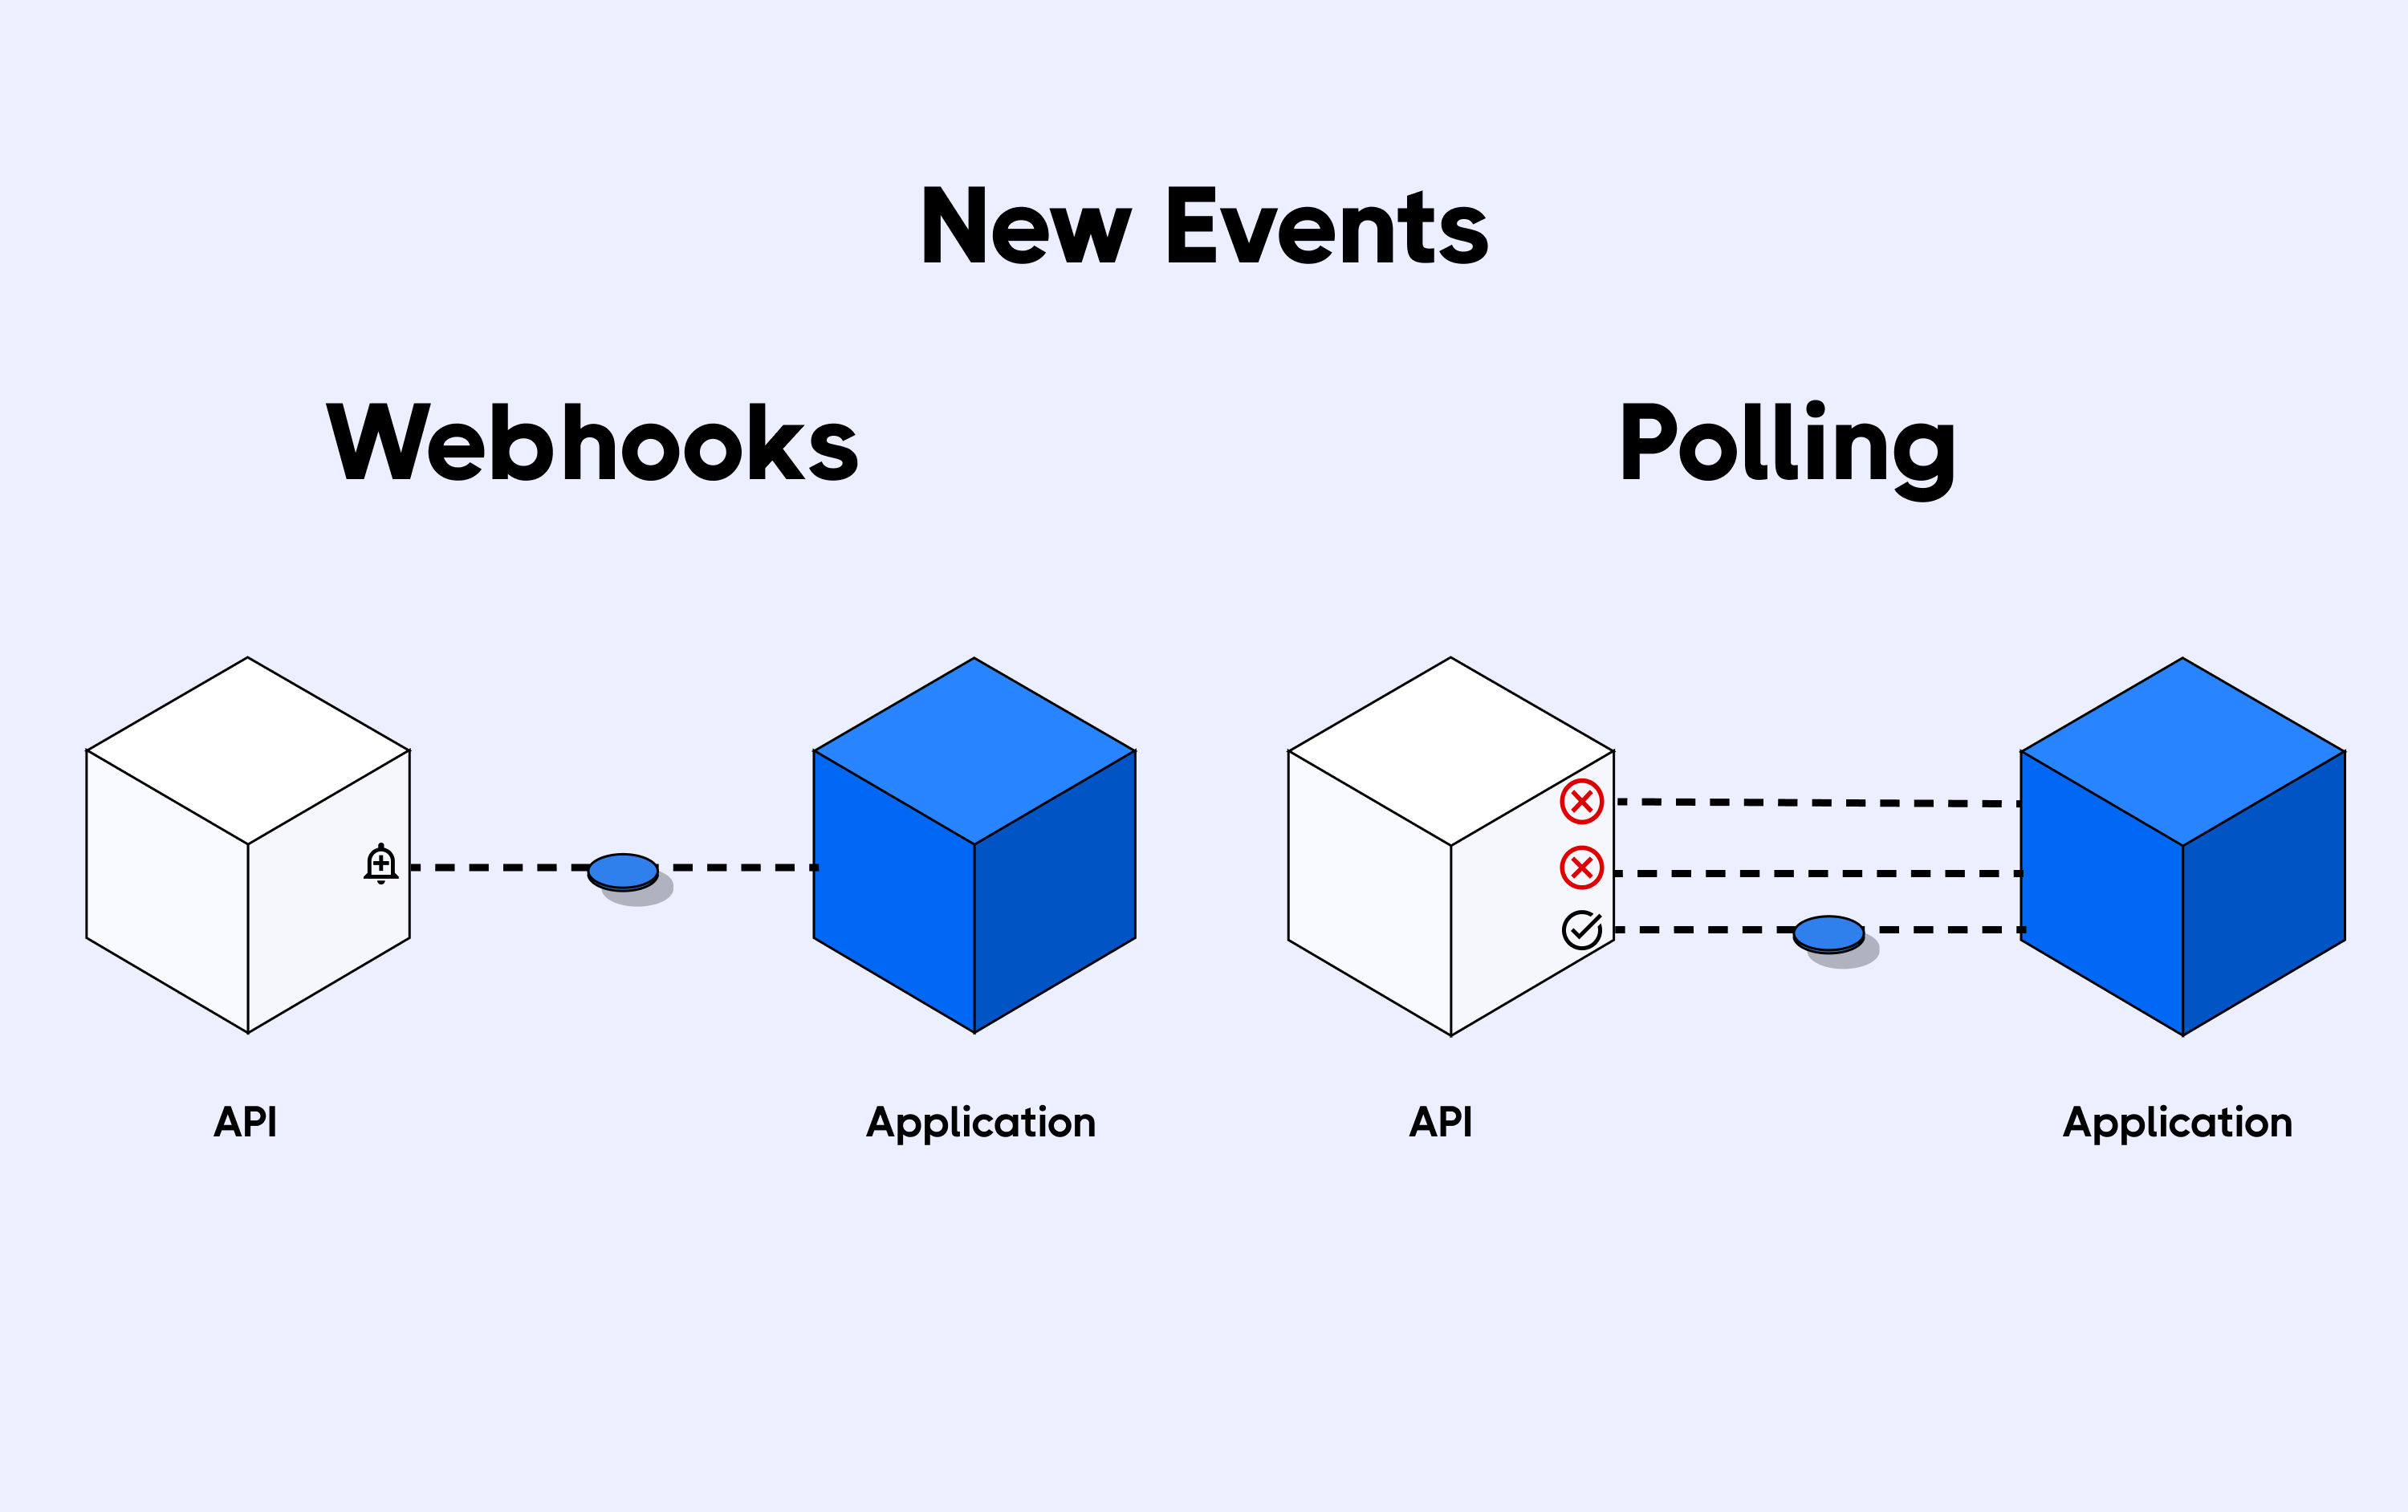 Comparison between webhooks and polling